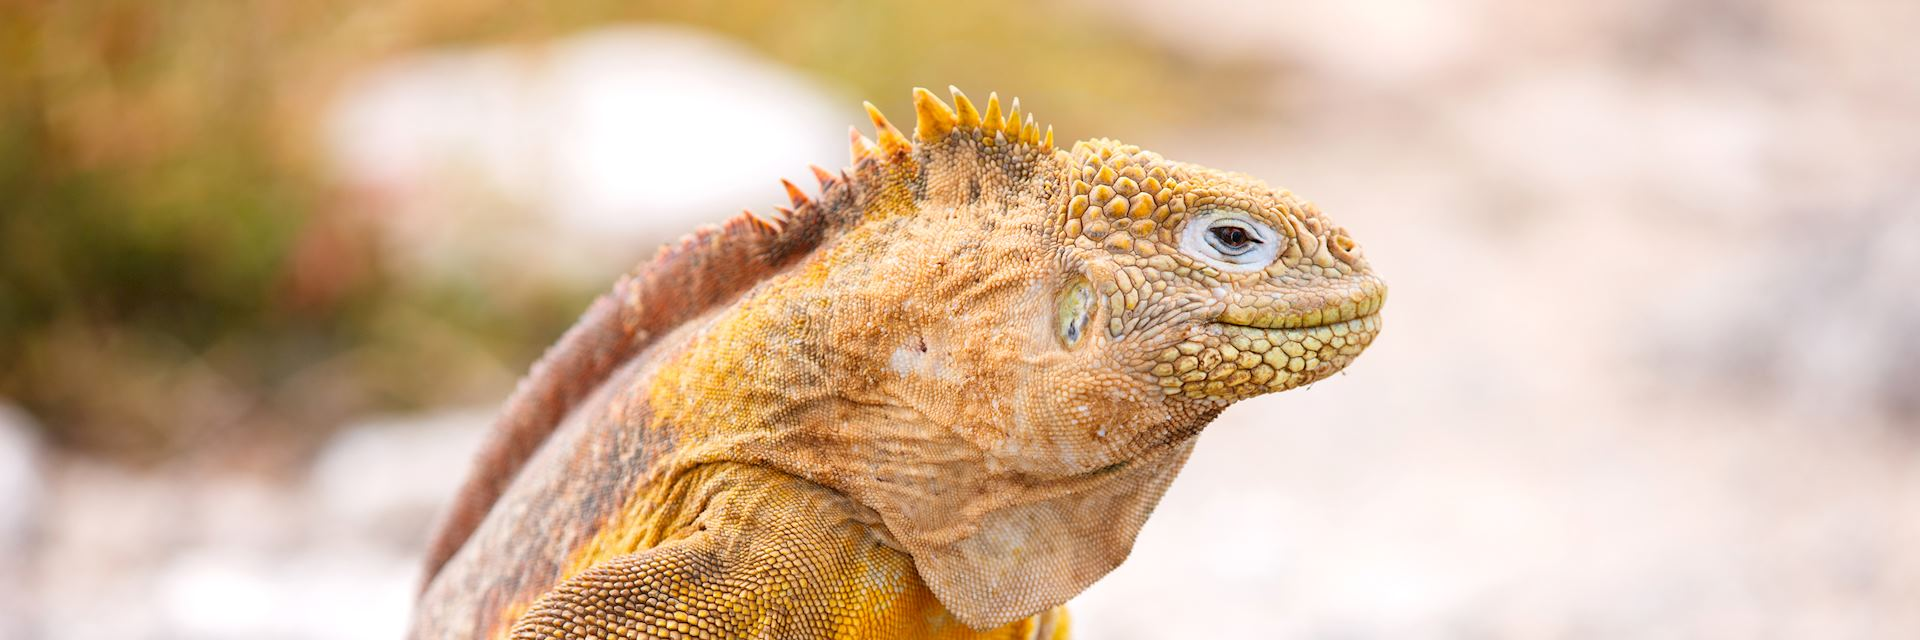 Land iguana, Galapagos Islands